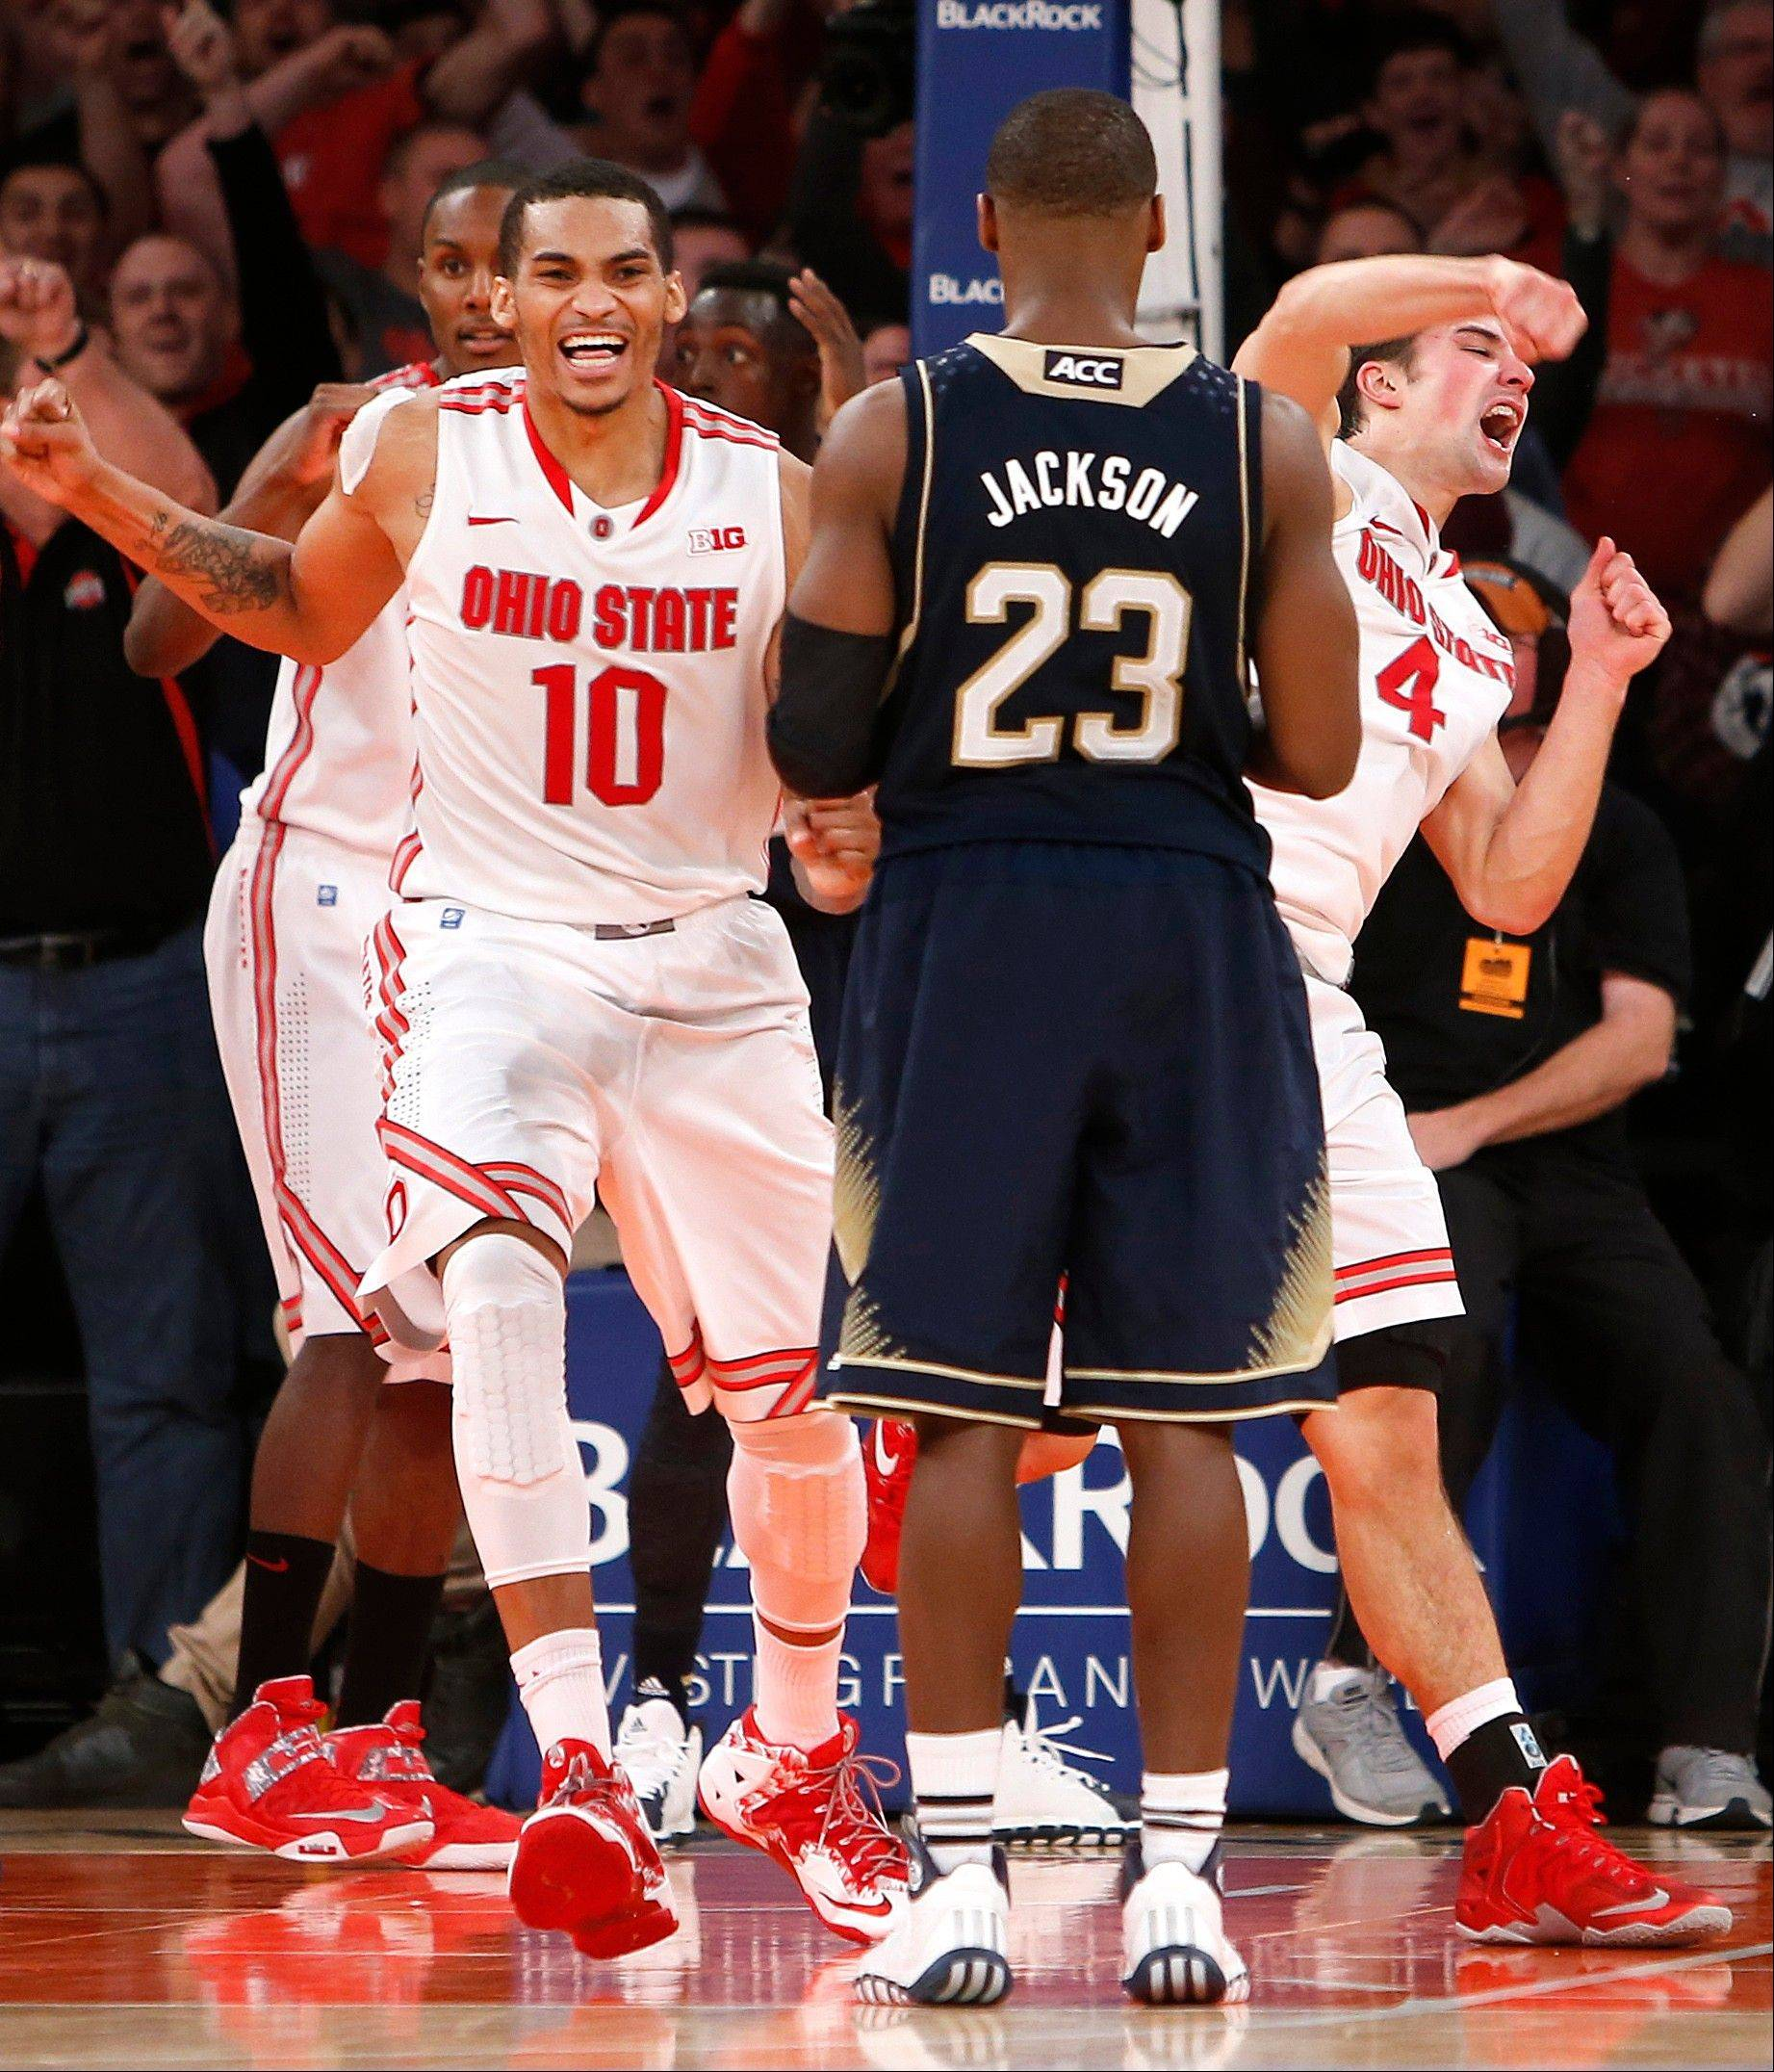 Ohio State�s LaQuinton Ross and Aaron Craft celebrate after a turnover by Notre Dame in the final seconds of their game Saturday in New York. Ohio State won 64-61.